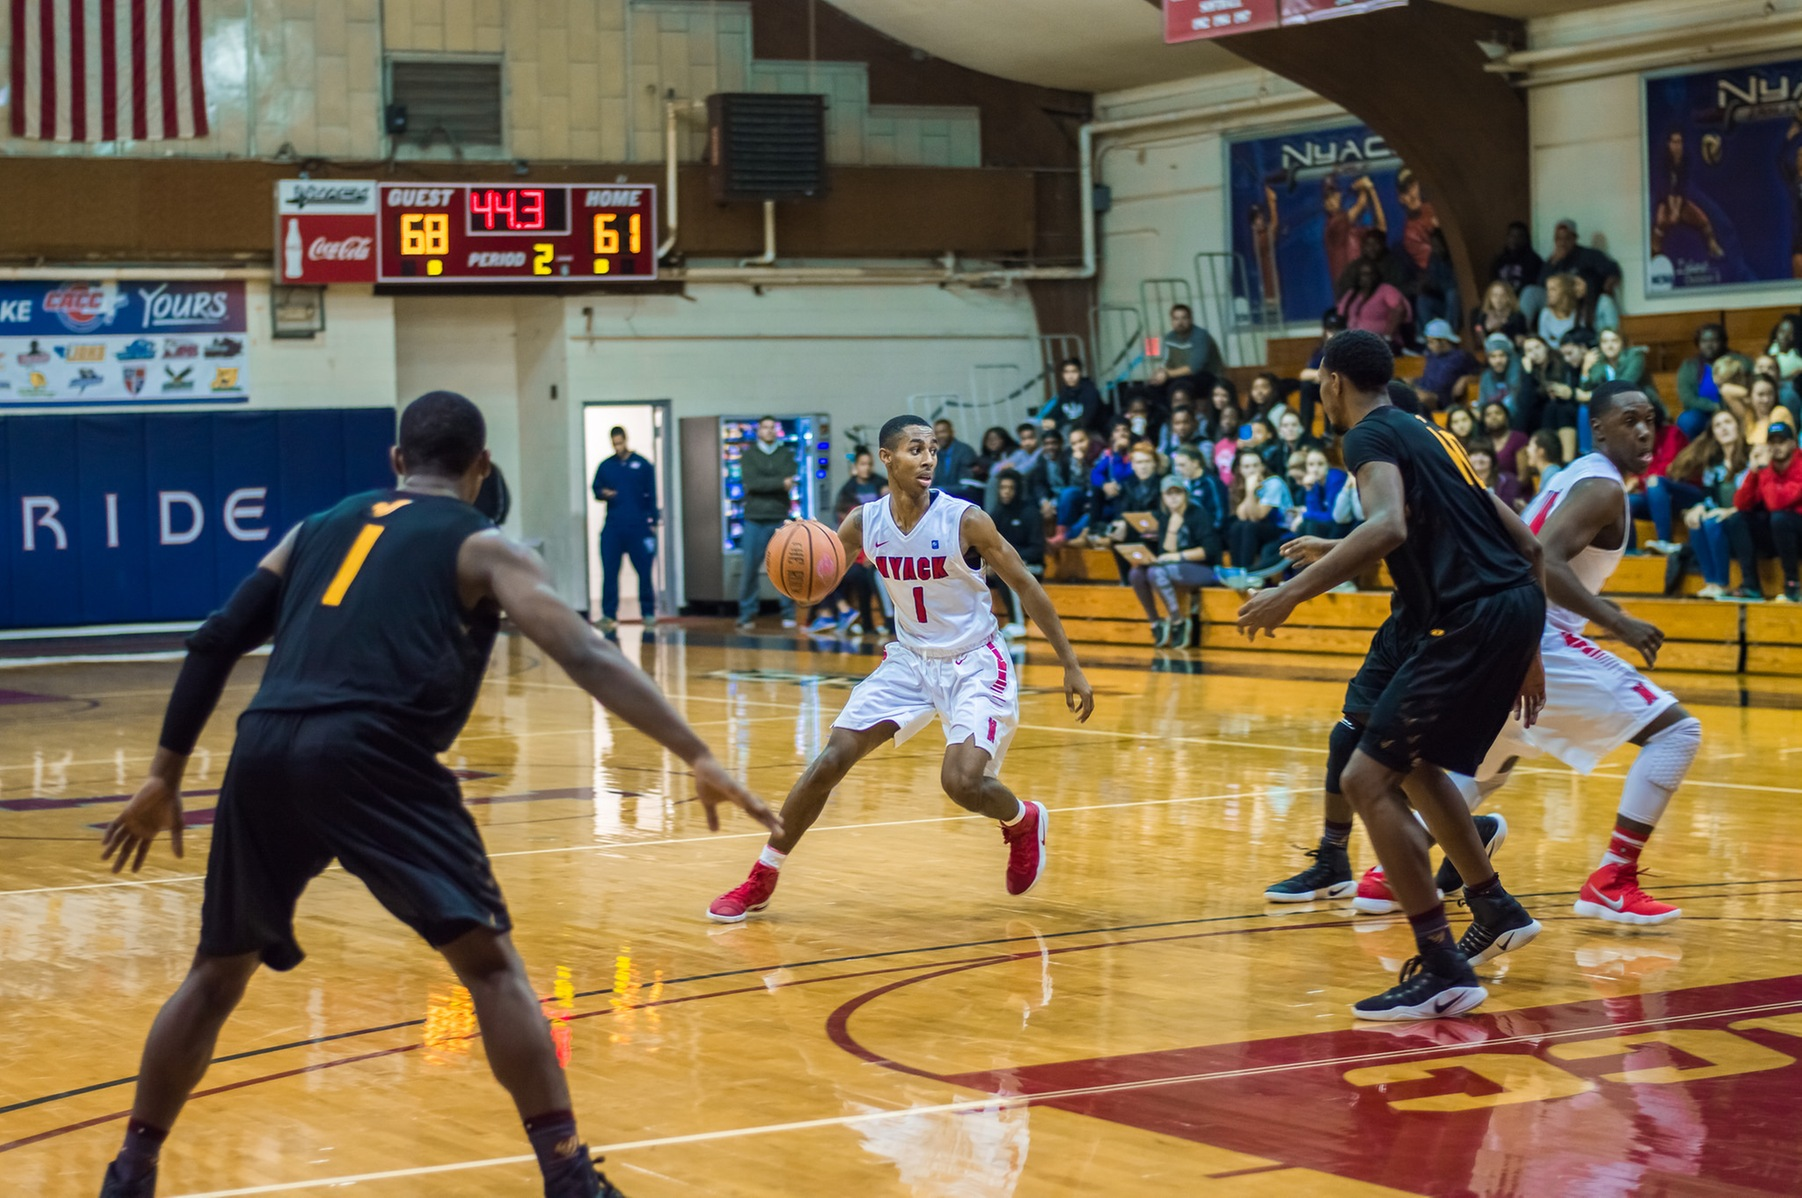 Ritchie Leads Warriors Past Dominican with 23 Points and 5 Assists on Senior Day